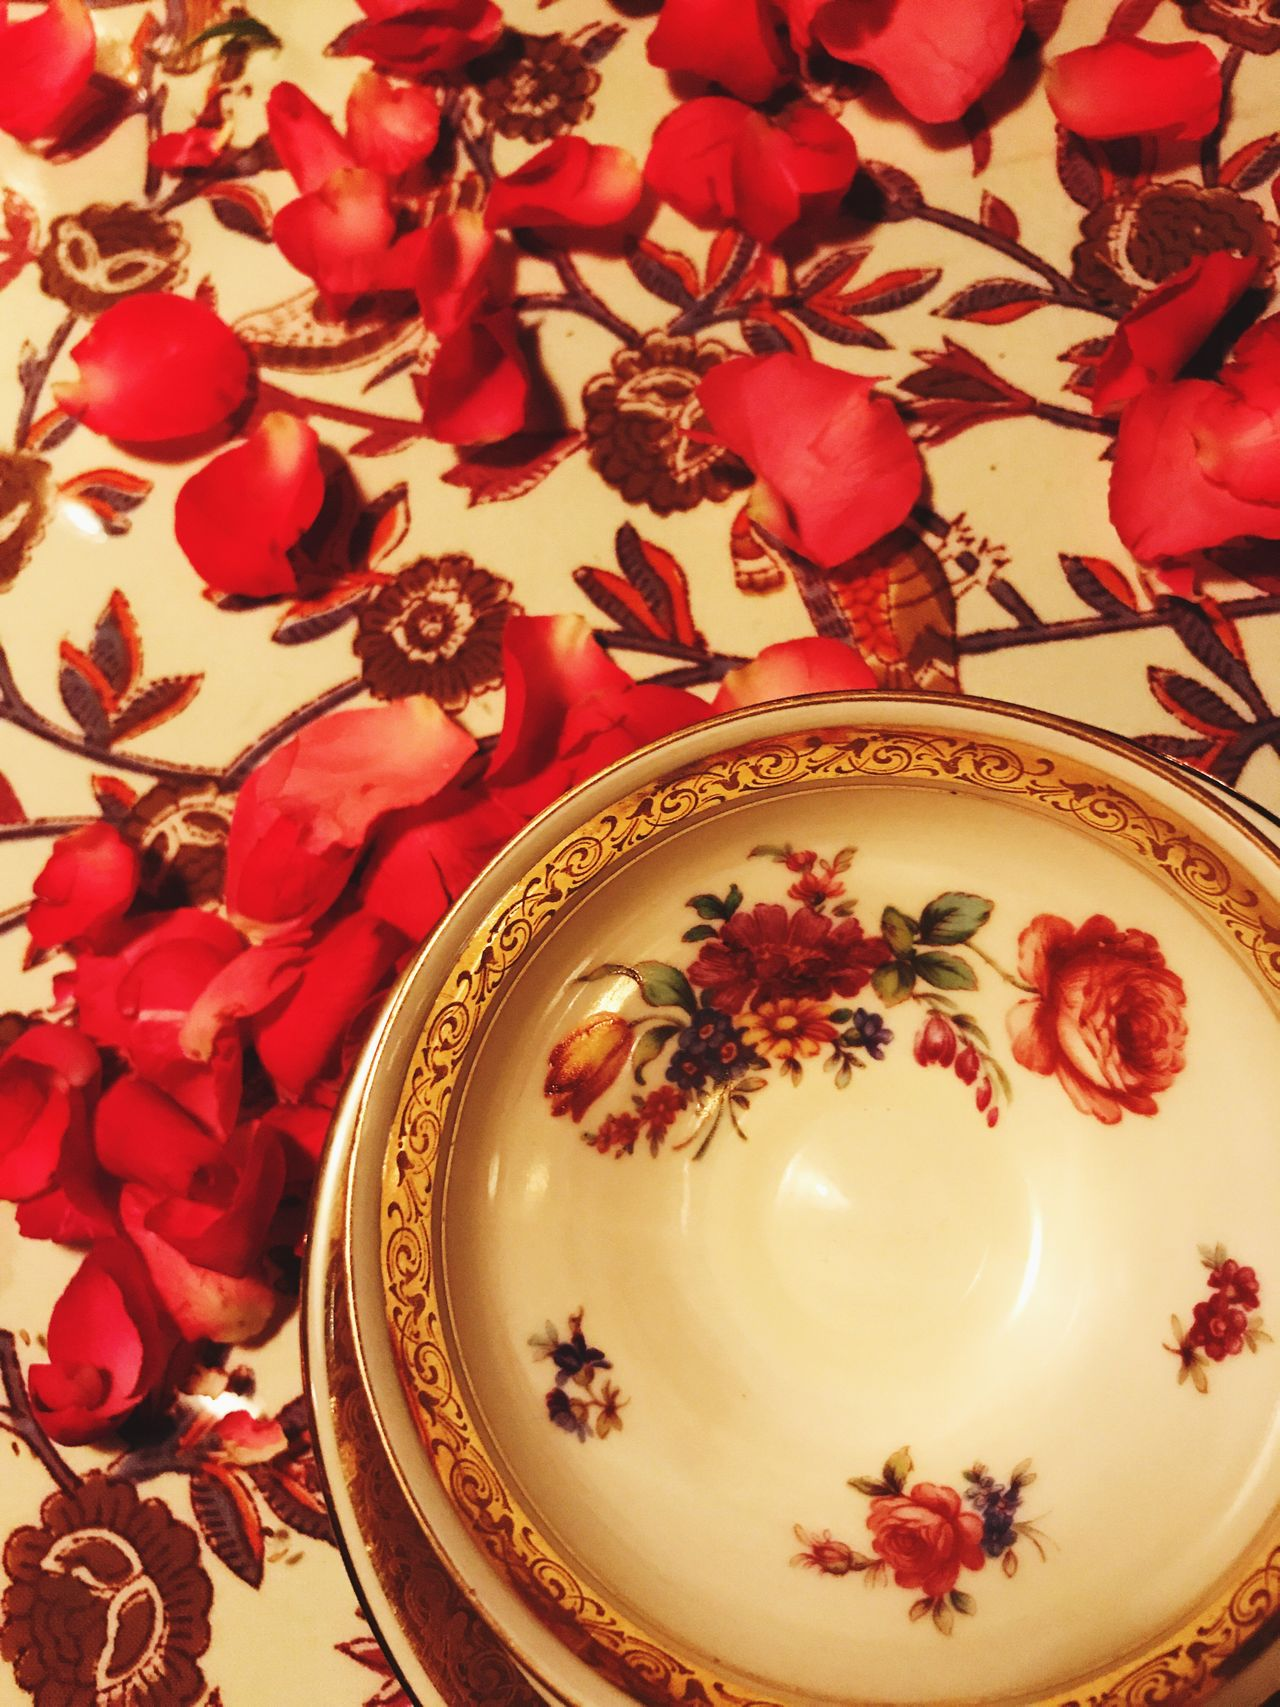 Rose tea Flower Petal Plate No People Indoors  Table Close-up High Angle View Celebration Food Leaf Freshness Fragility Nature Beauty In Nature Day Flower Head Ready-to-eat Rosé Rosetea Tea